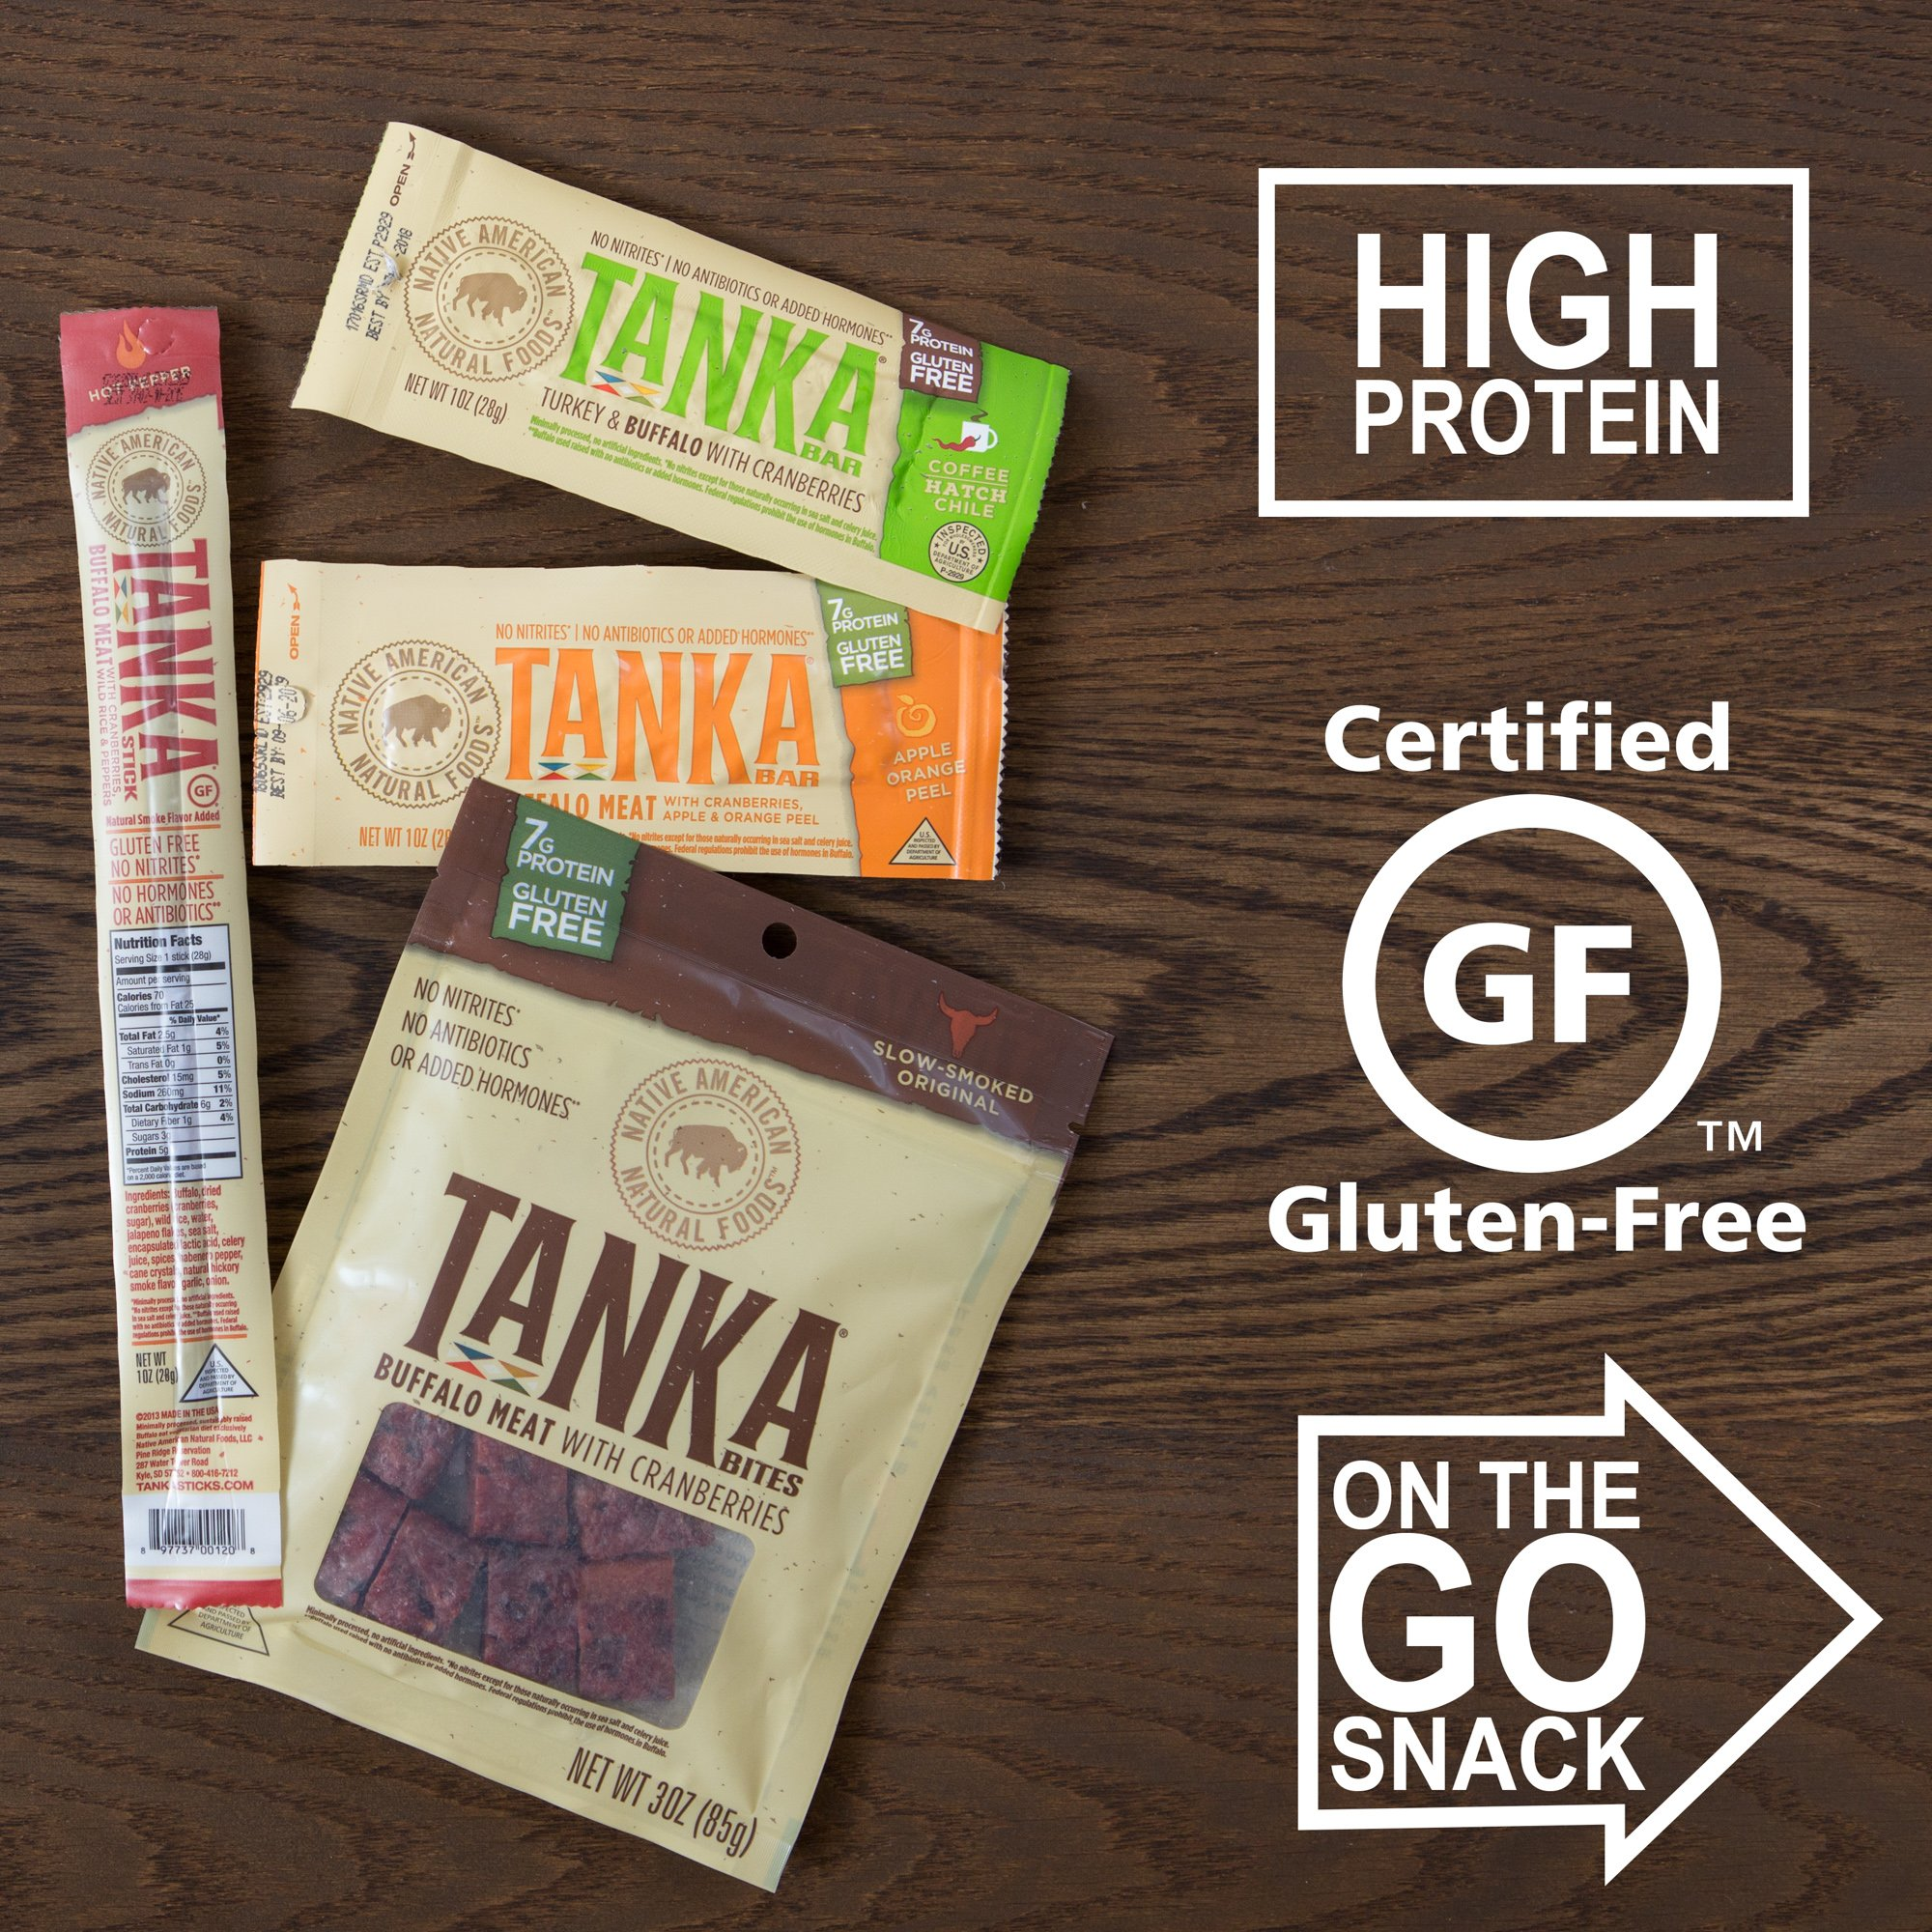 Bison Pemmican Meat Bar with Buffalo and Cranberries by Tanka, Gluten Free, Beef Jerky Alternative, Slow Smoked Original, 2 Ounce Bar, Pack of 12 by Tanka (Image #11)